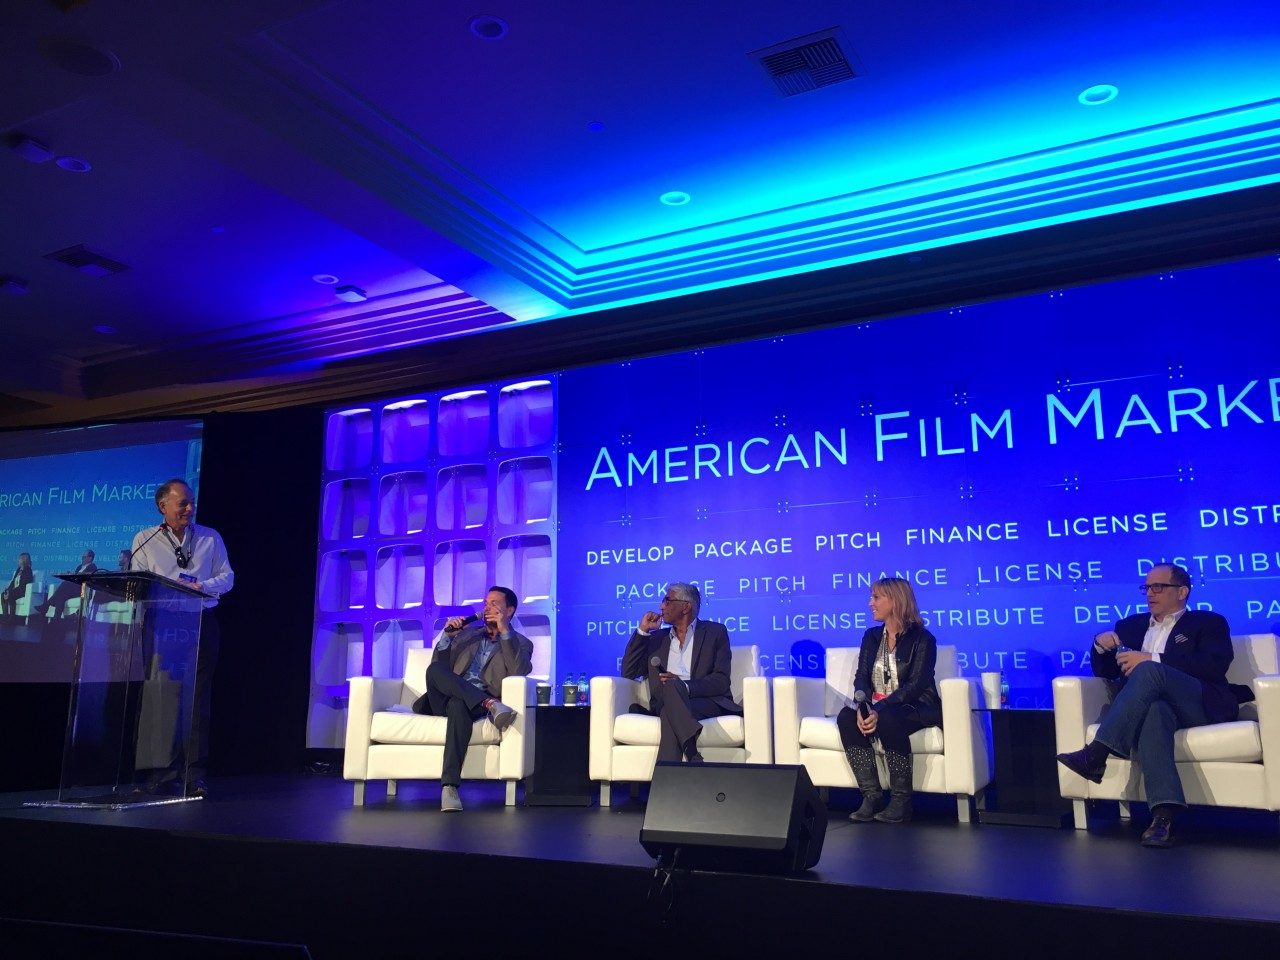 Stage 32 Expands Its Partnership With the American Film Market